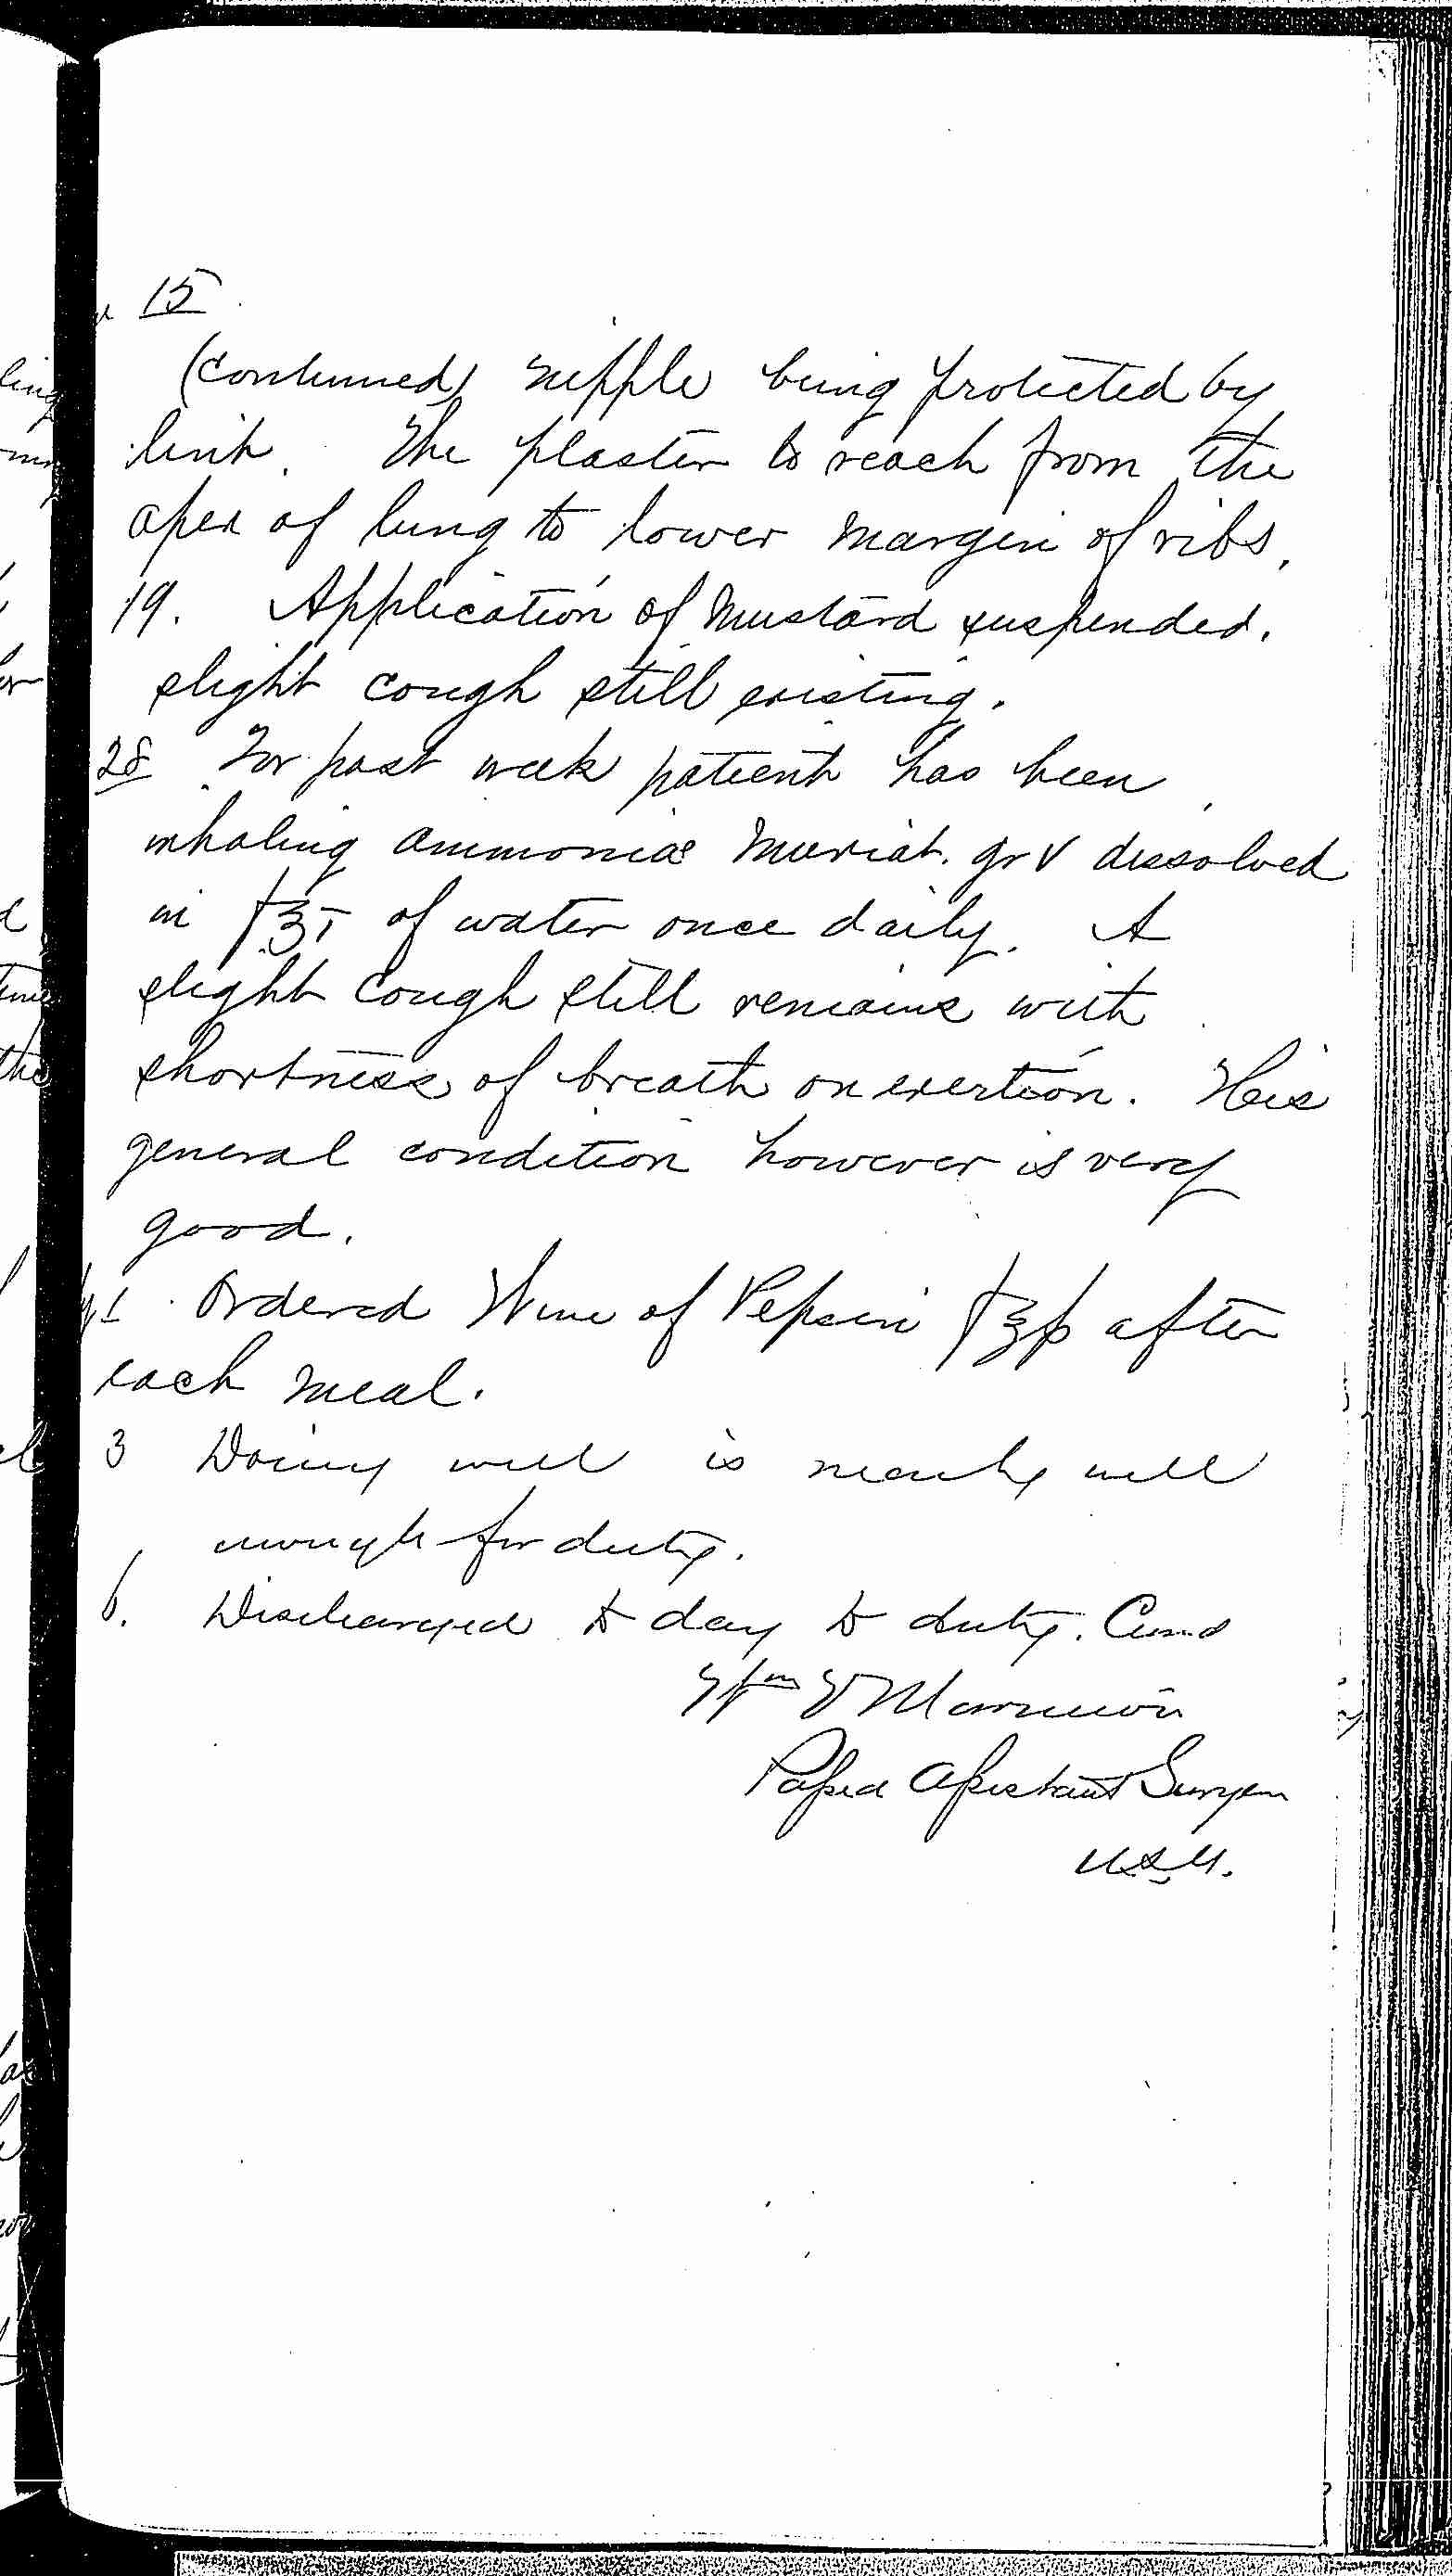 Entry for James W. Quinn (page 7 of 7) in the log Hospital Tickets and Case Papers - Naval Hospital - Washington, D.C. - 1868-69